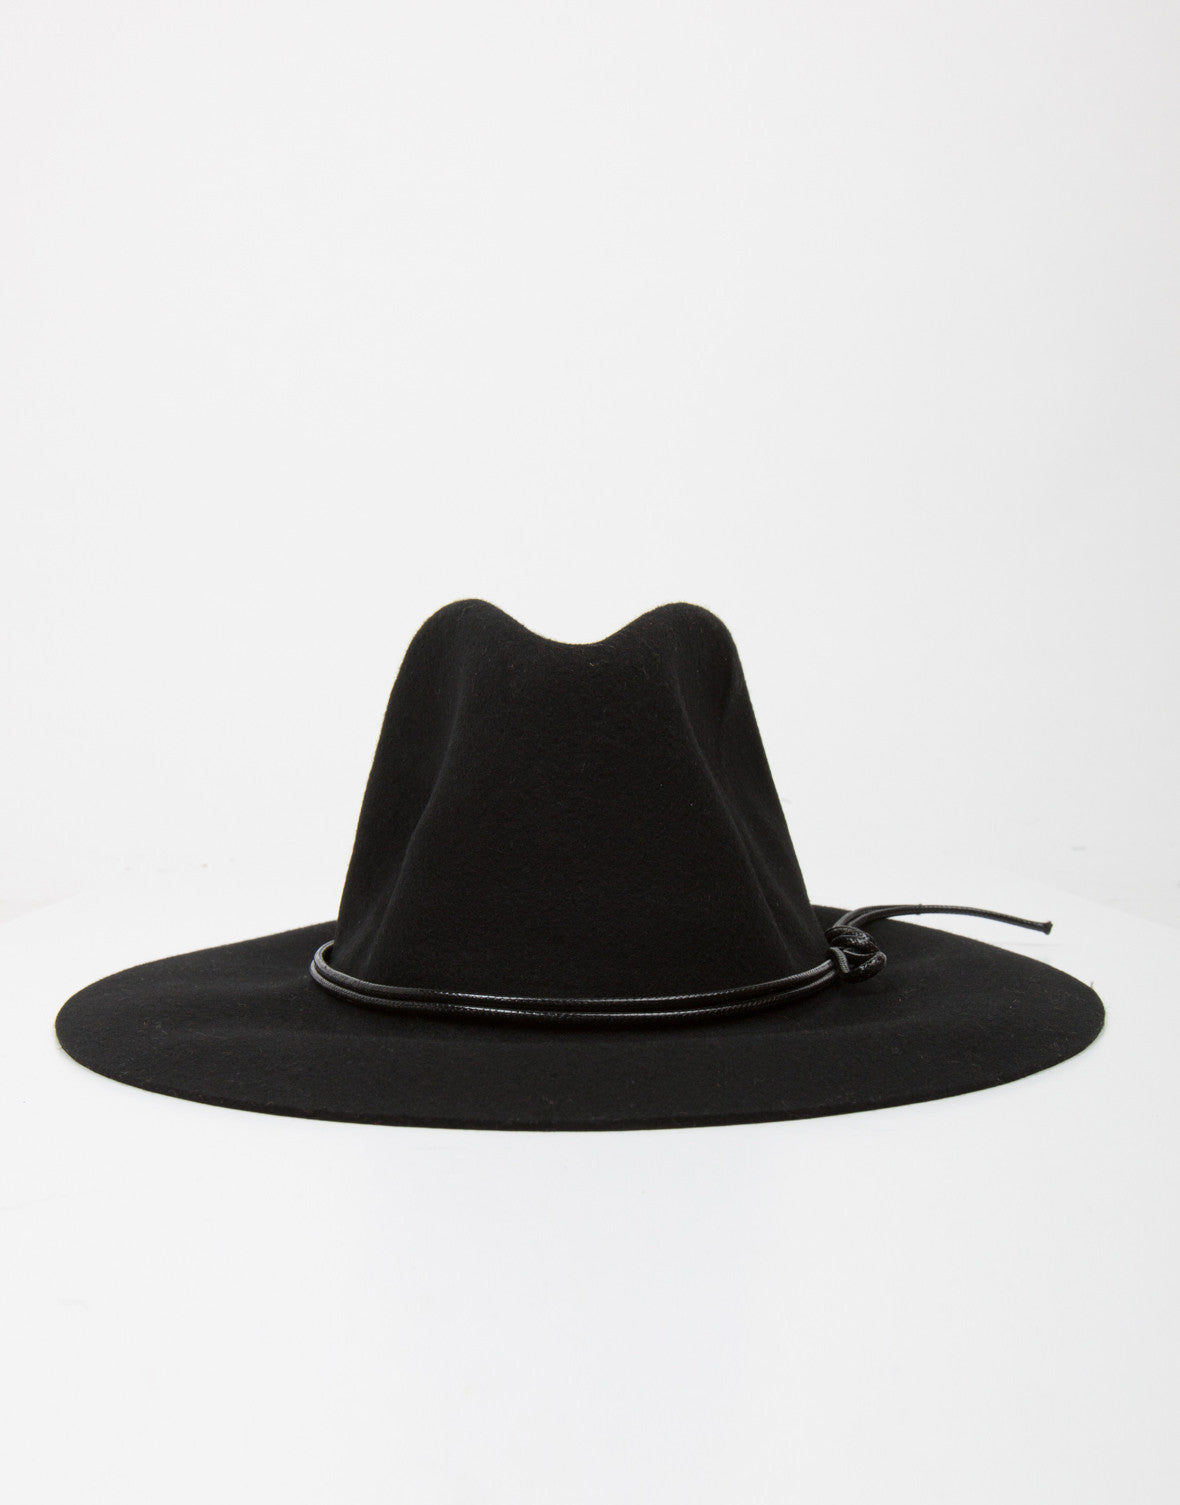 Front View of Floppy Fedora Hat